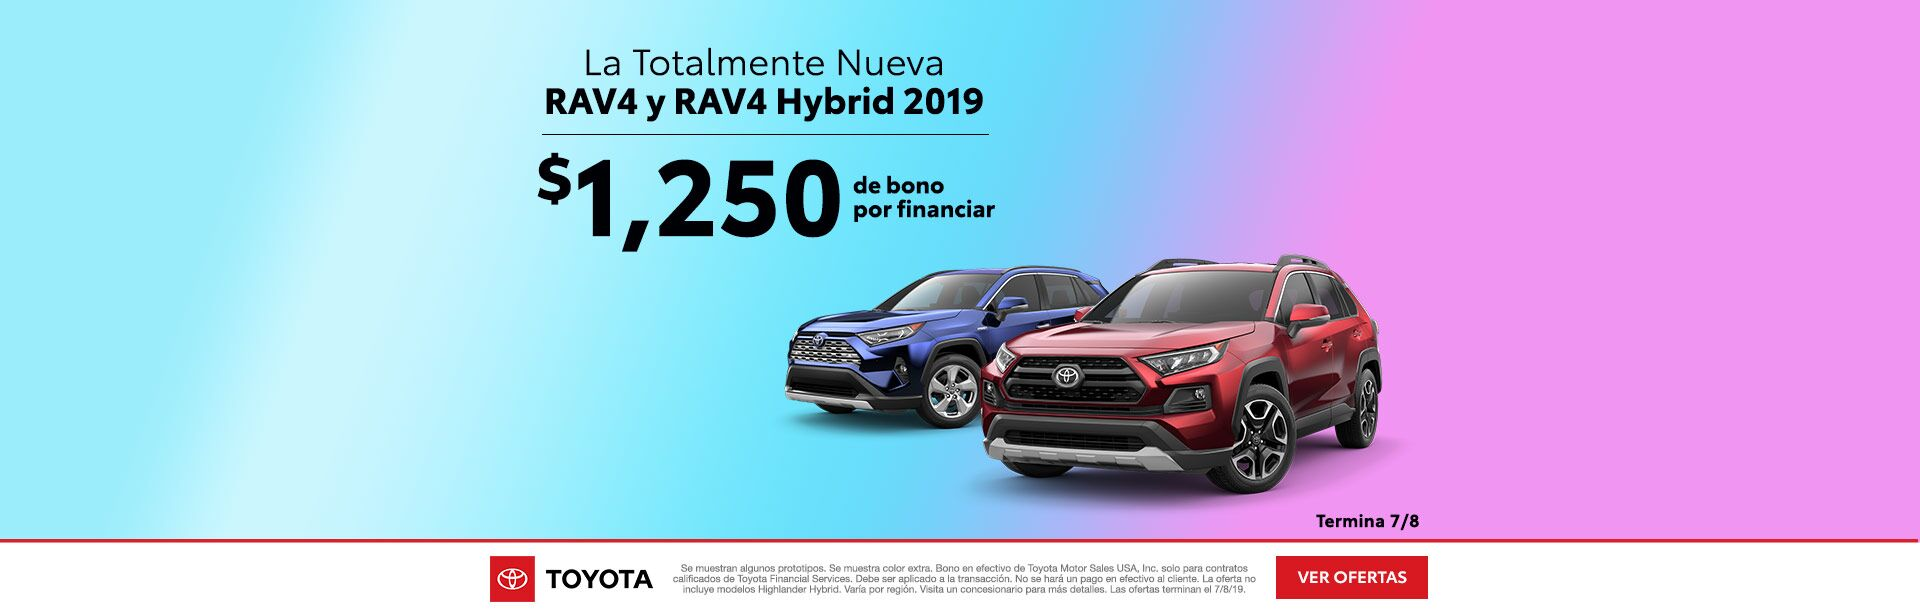 2019 June NYR Spanish Tier3 Rav4